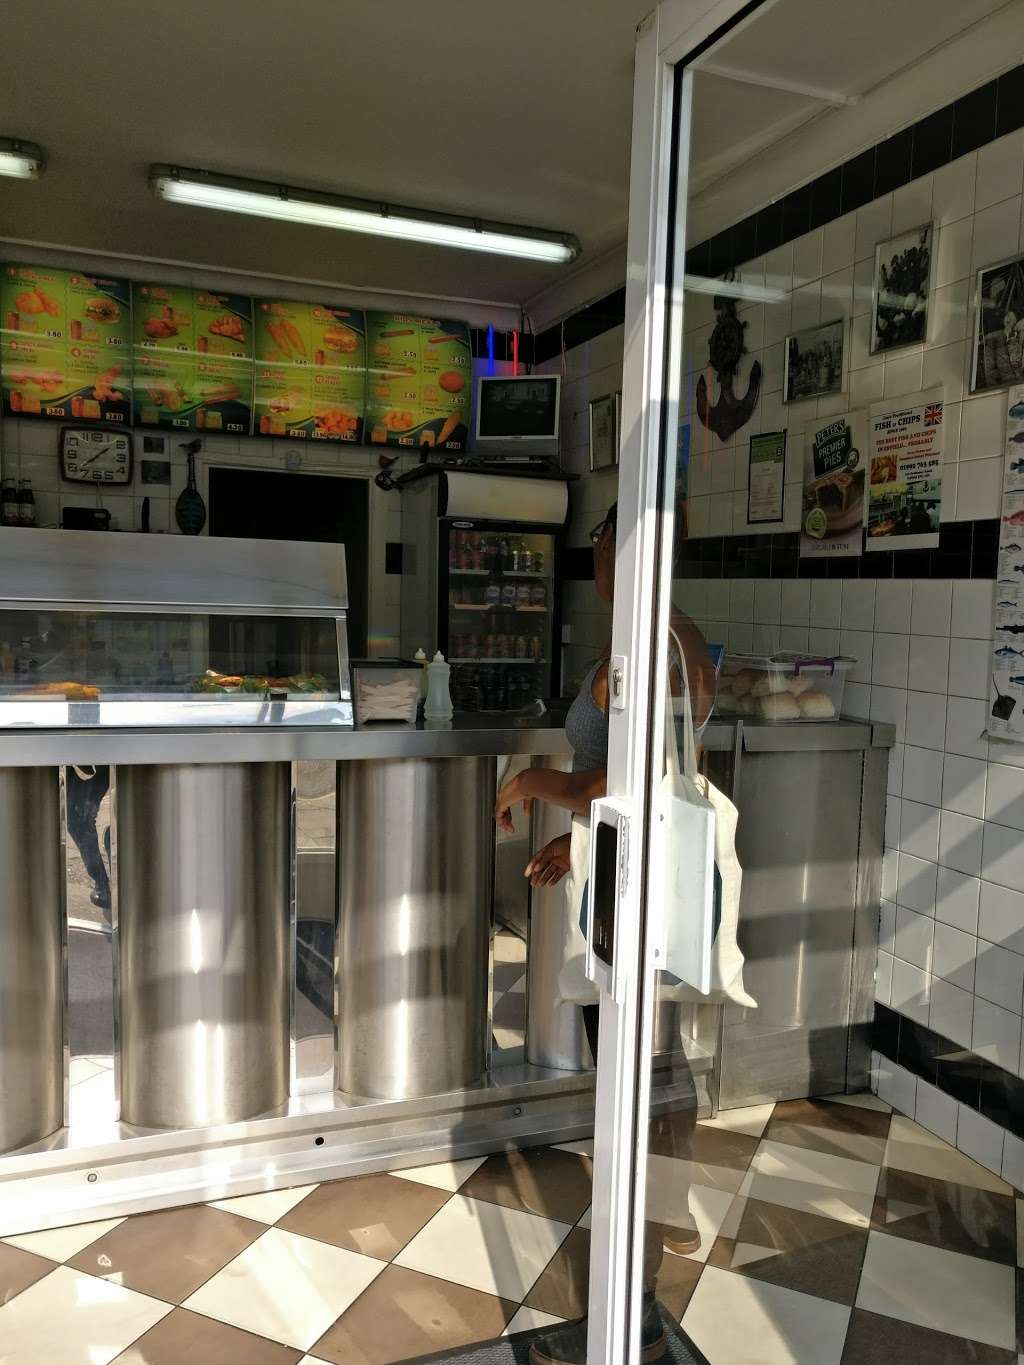 Jims Fish And Chips - meal takeaway  | Photo 10 of 10 | Address: 152 Ordnance Rd, Enfield EN3 6DL, UK | Phone: 01992 763585